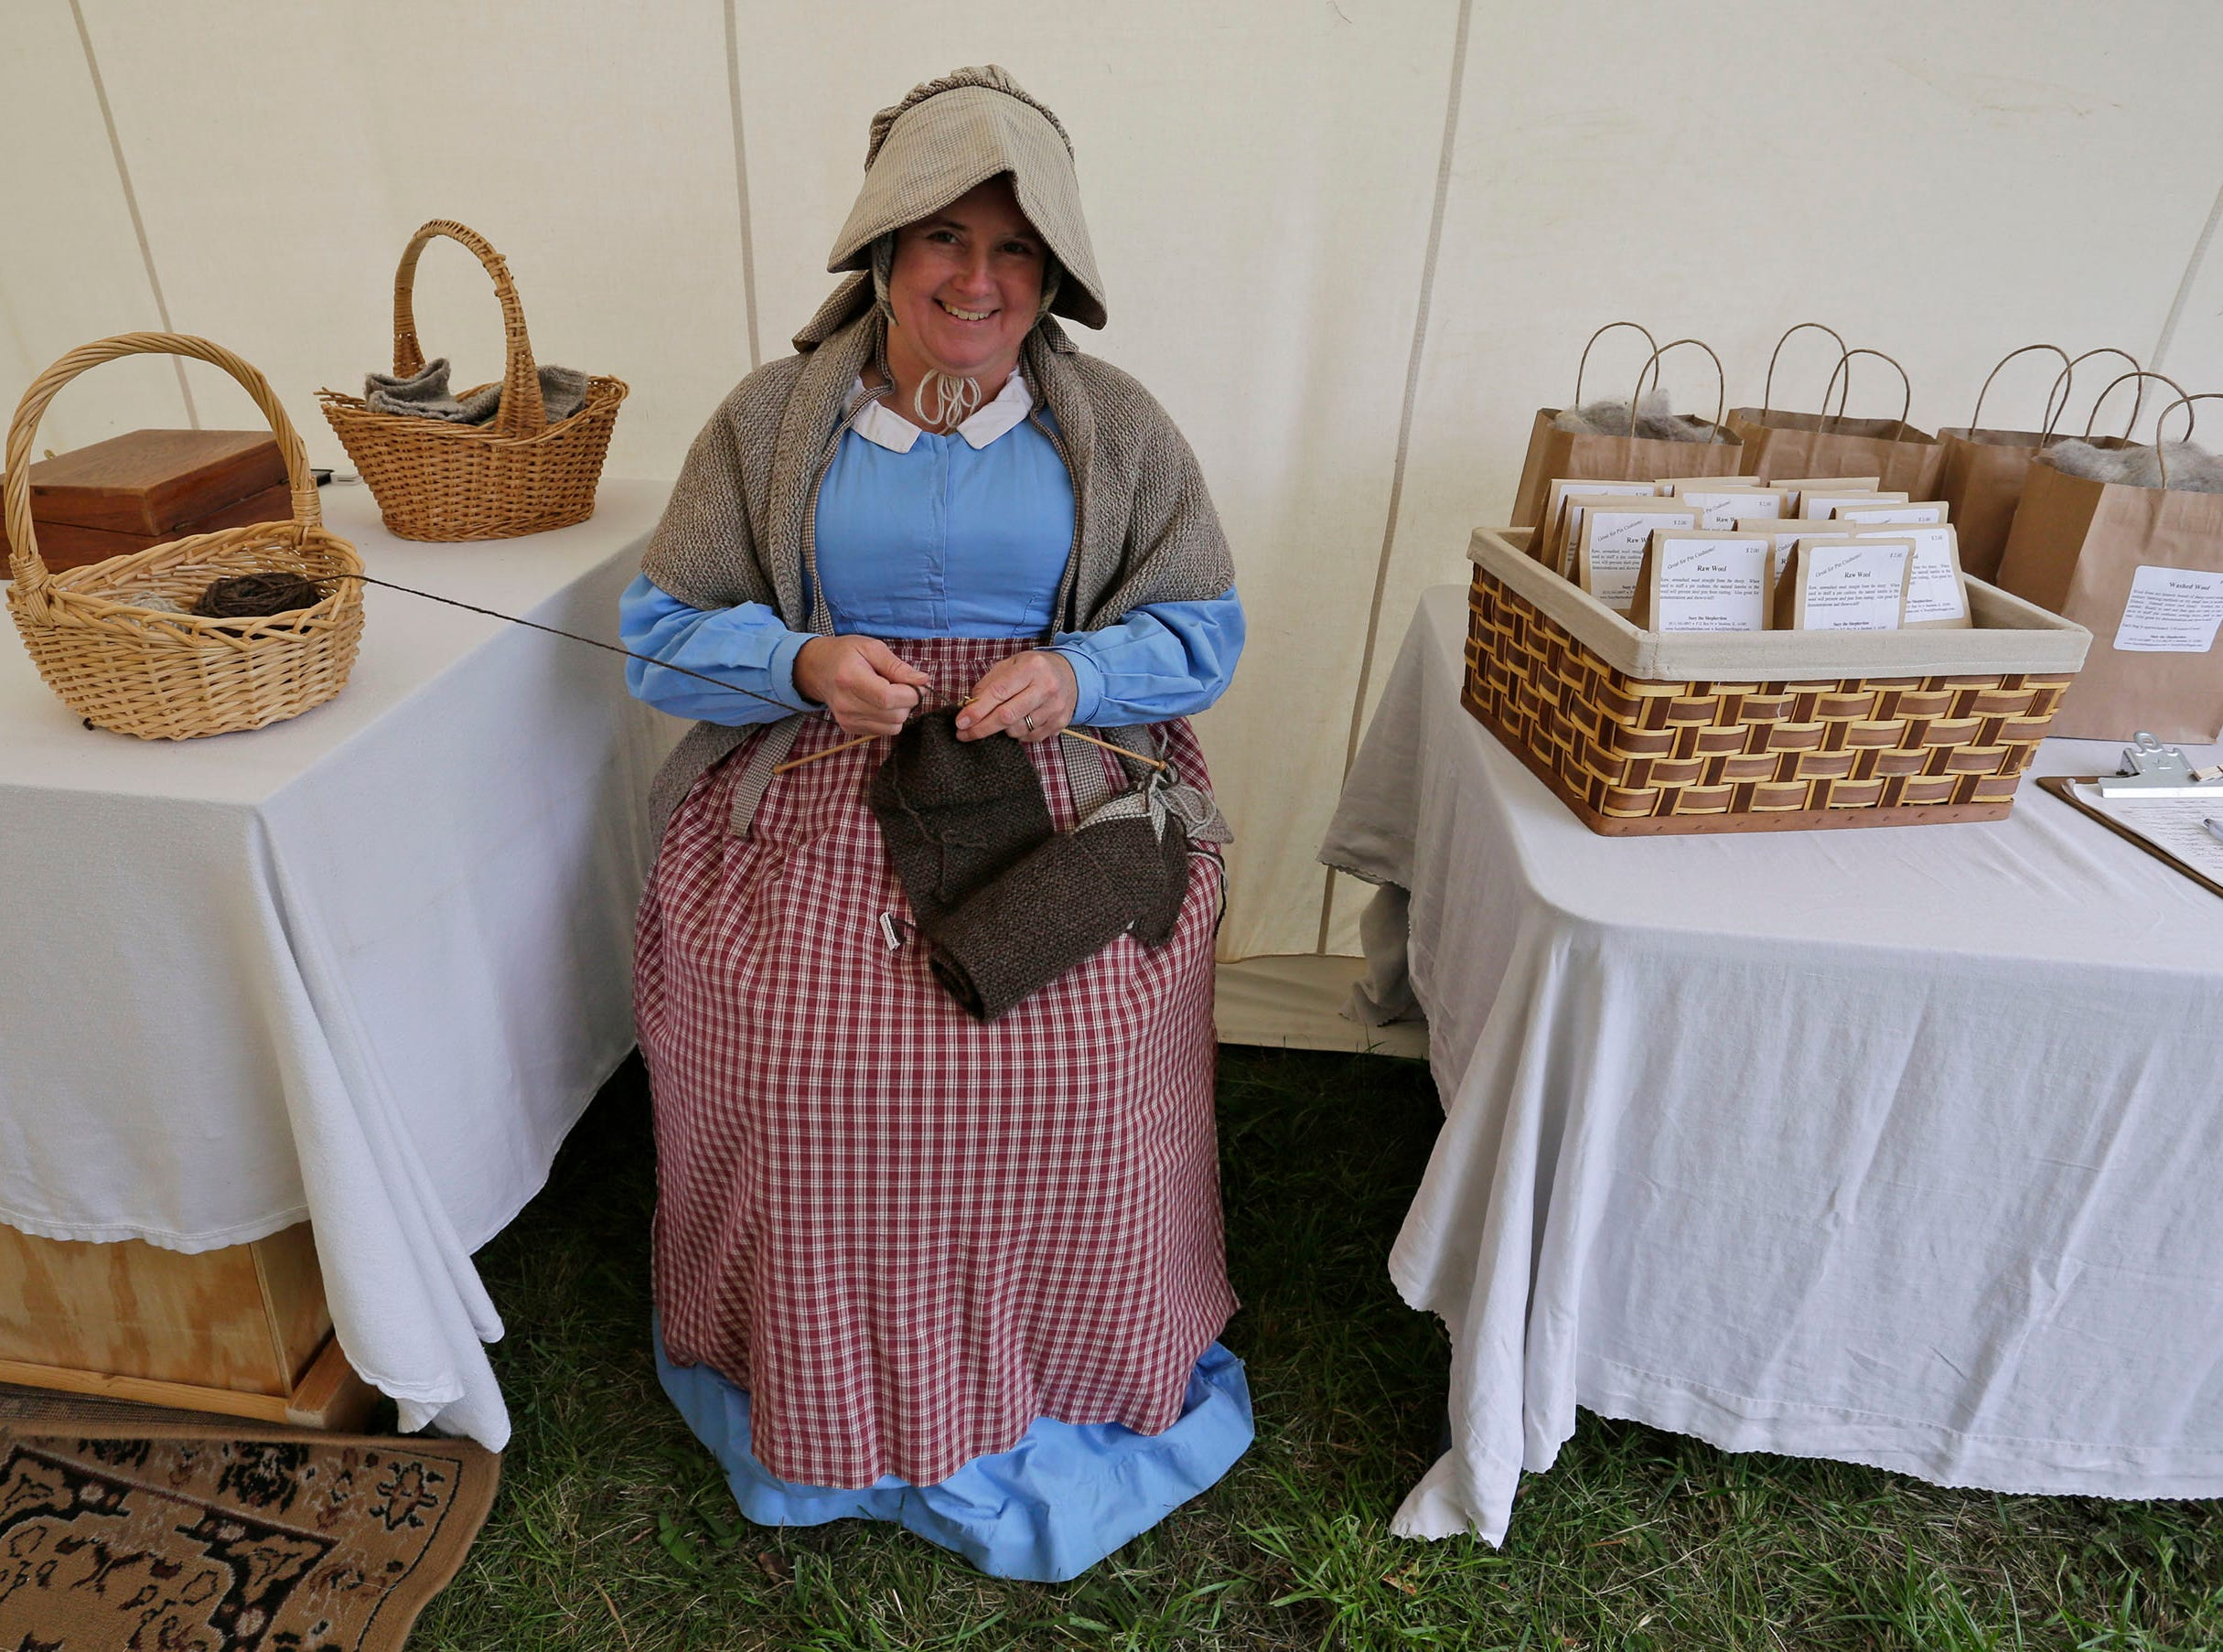 Suzy Beggin takes a break from knitting 19th century style items during the Civil War Weekend at the Wade House, Saturday September 29, 2018, in Greenbush, Wis.